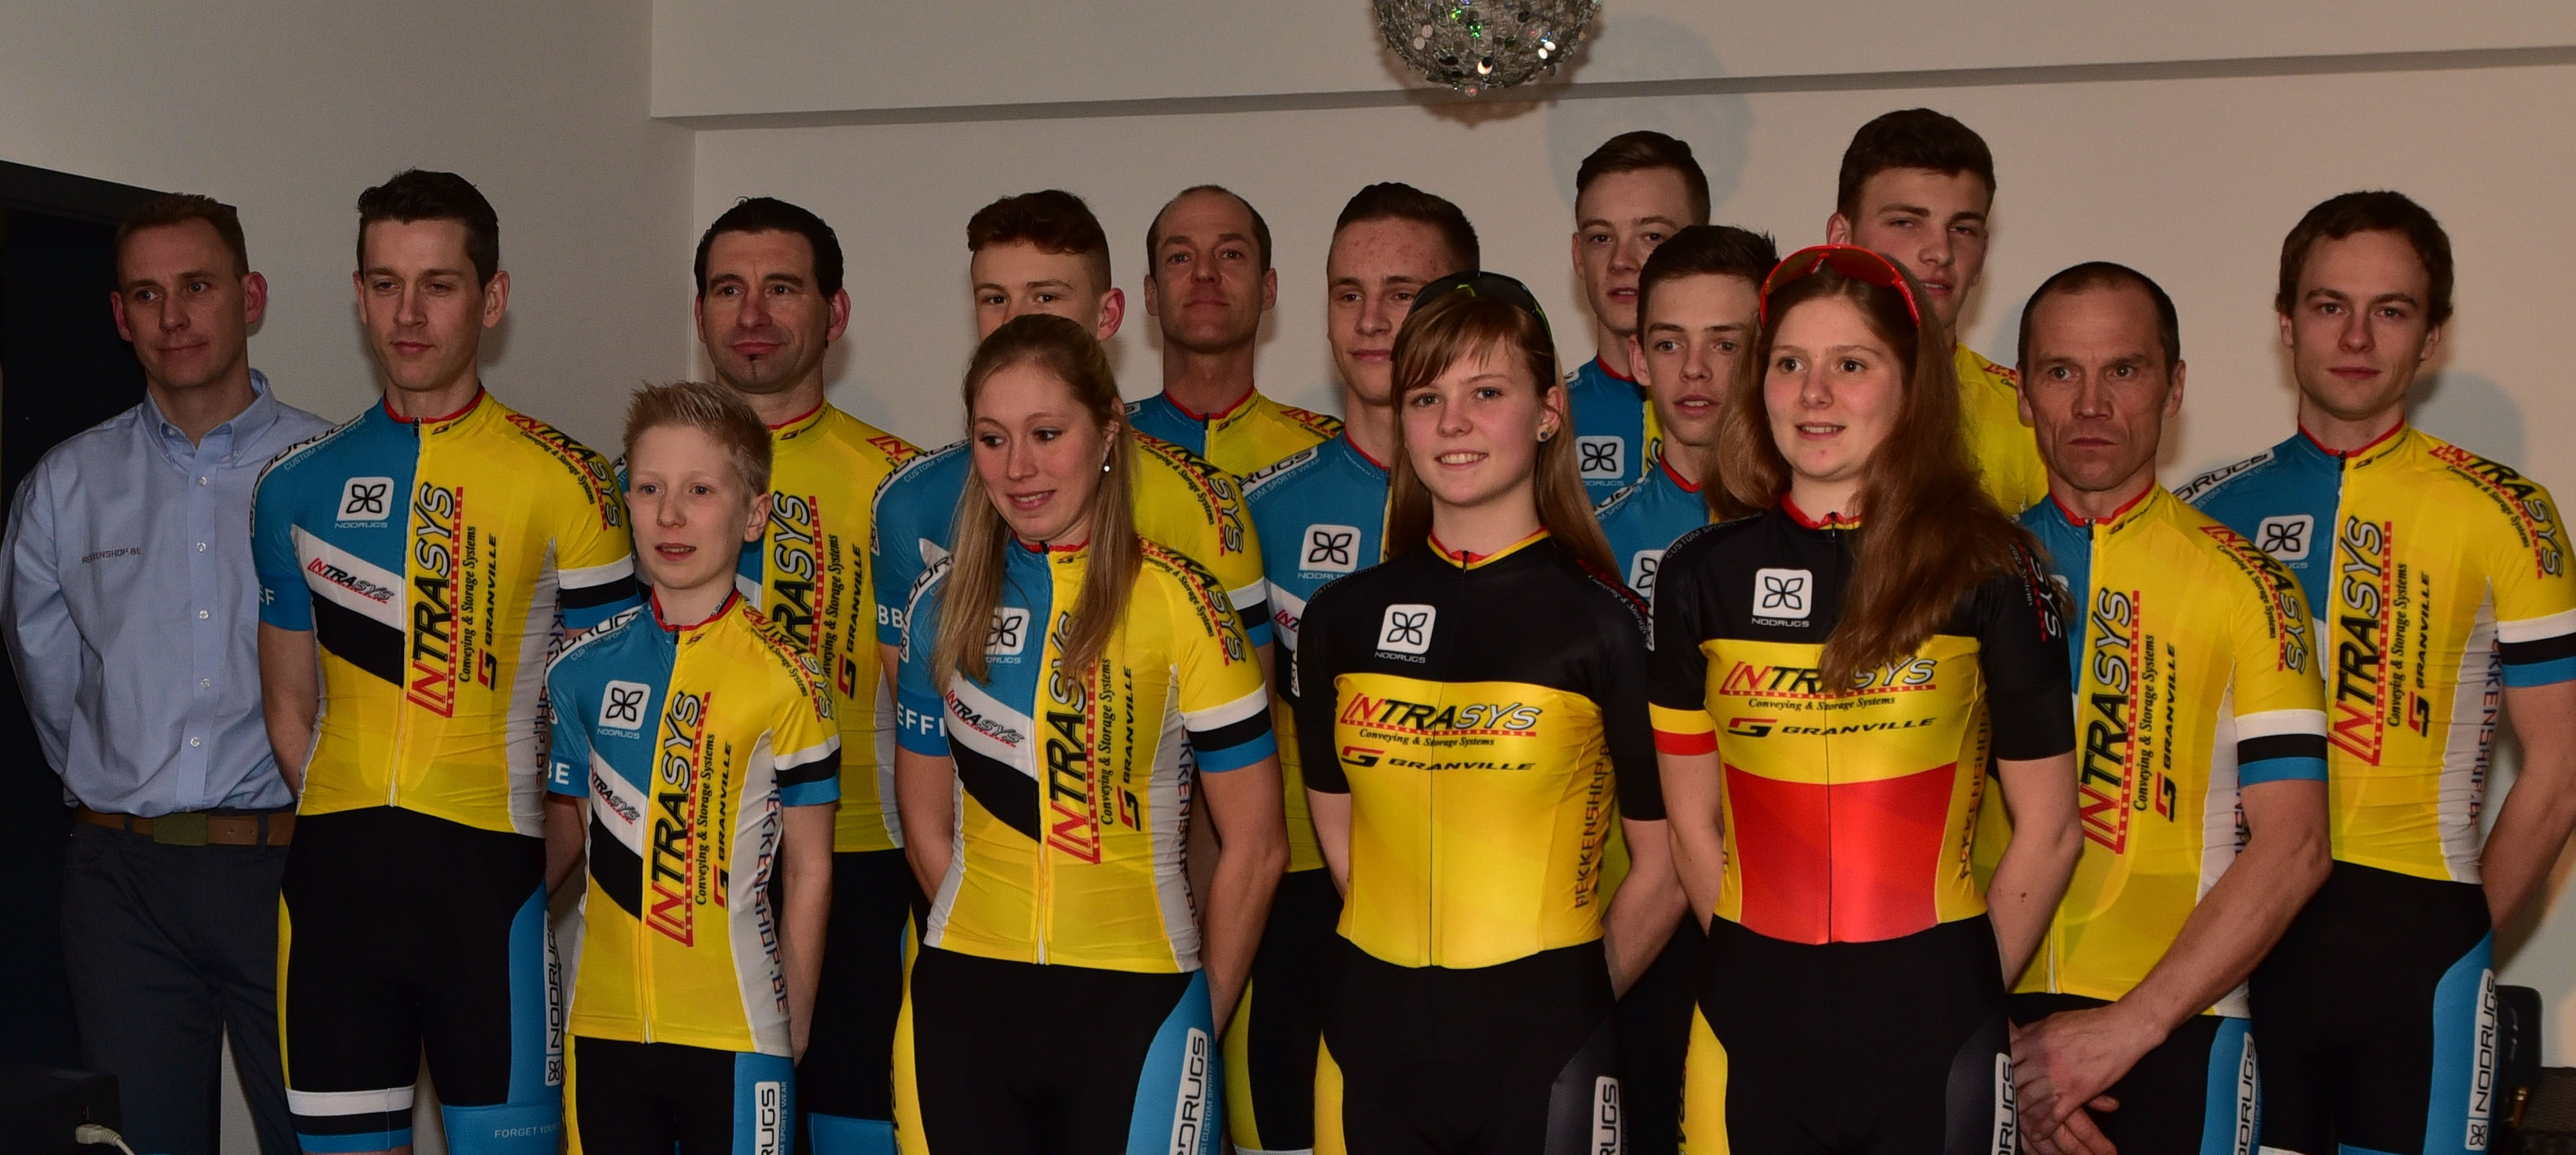 Intrasys No Drugs MTB Dreamteam voorgesteld